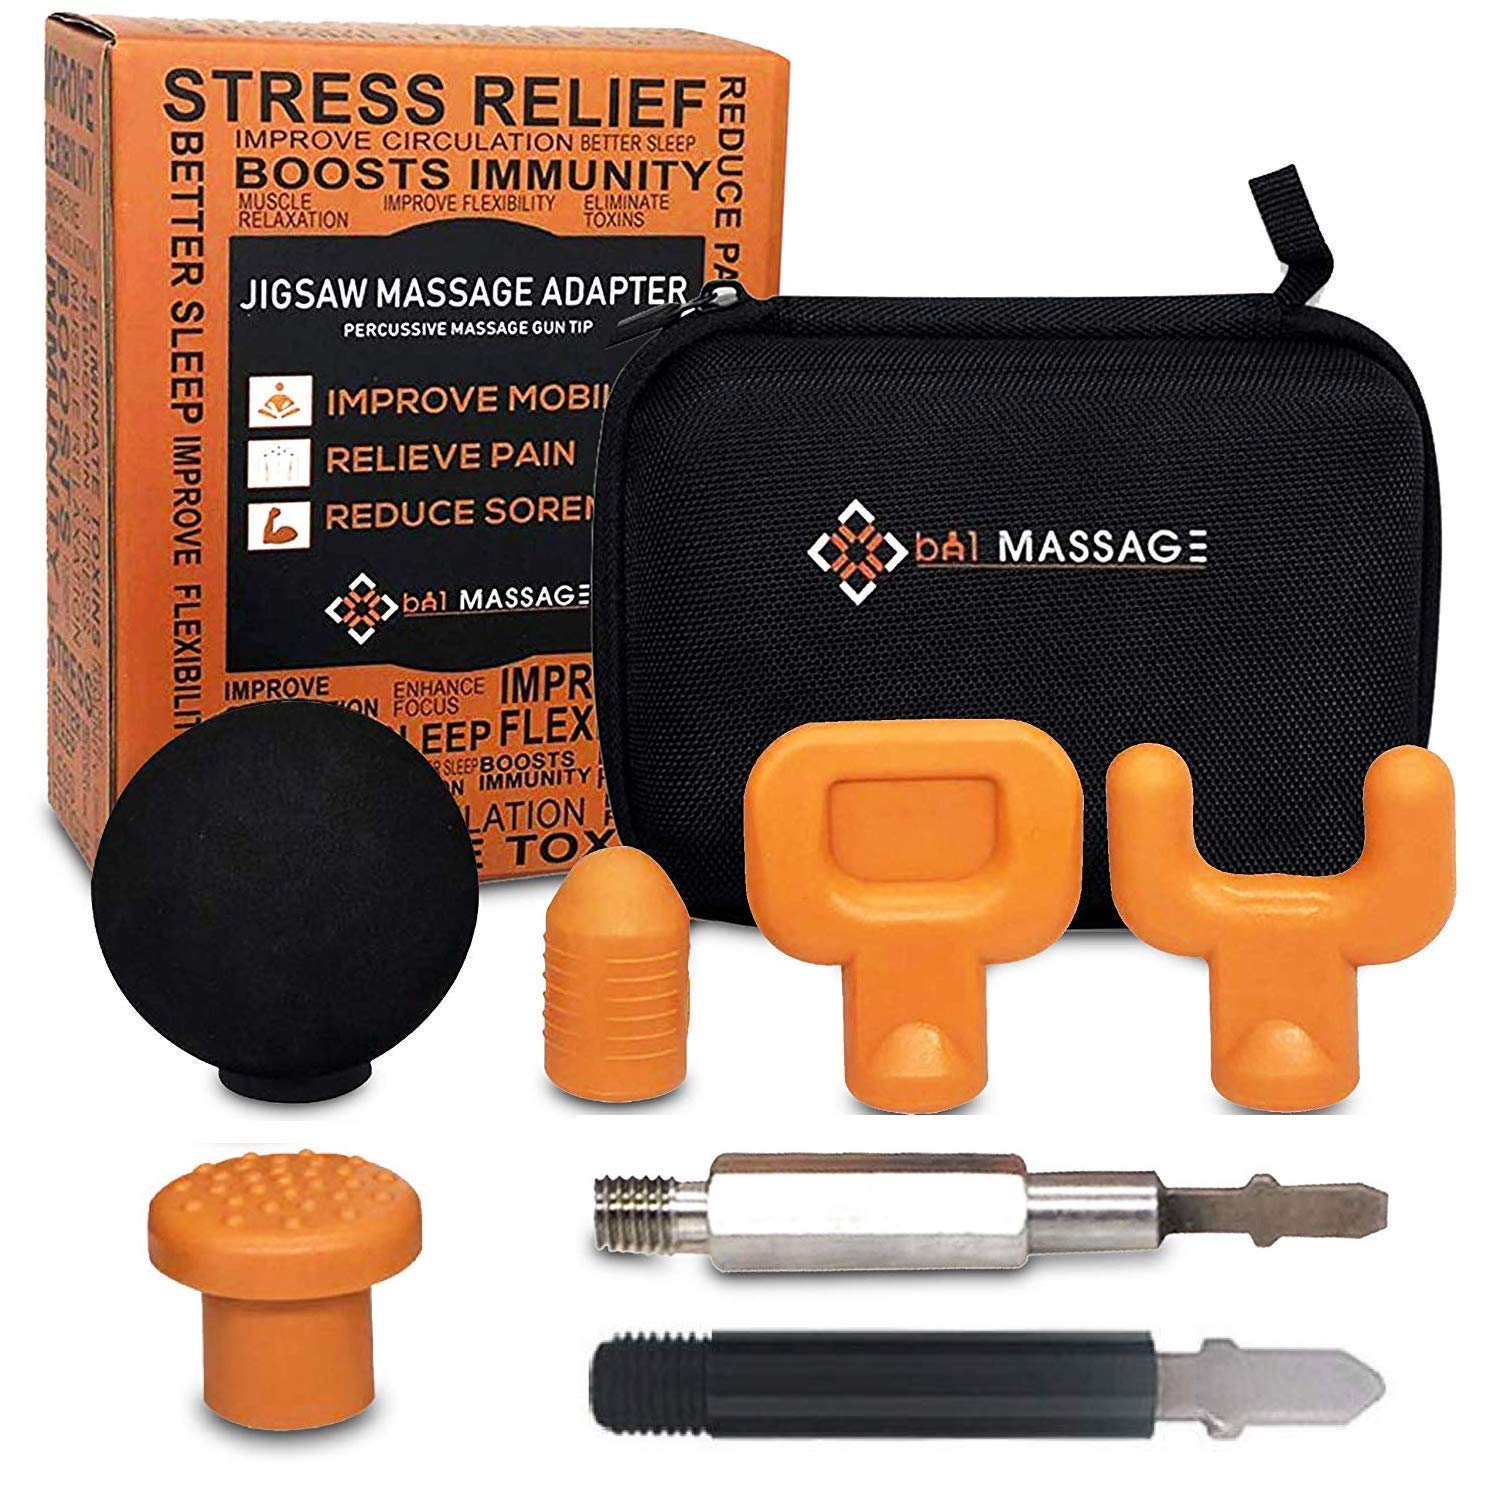 bA1 Massage - Jigsaw Massager Adapter Attachment - 5 Deep Tissue Percussion Tips with Extra Fortified T Bit - Recover Faster